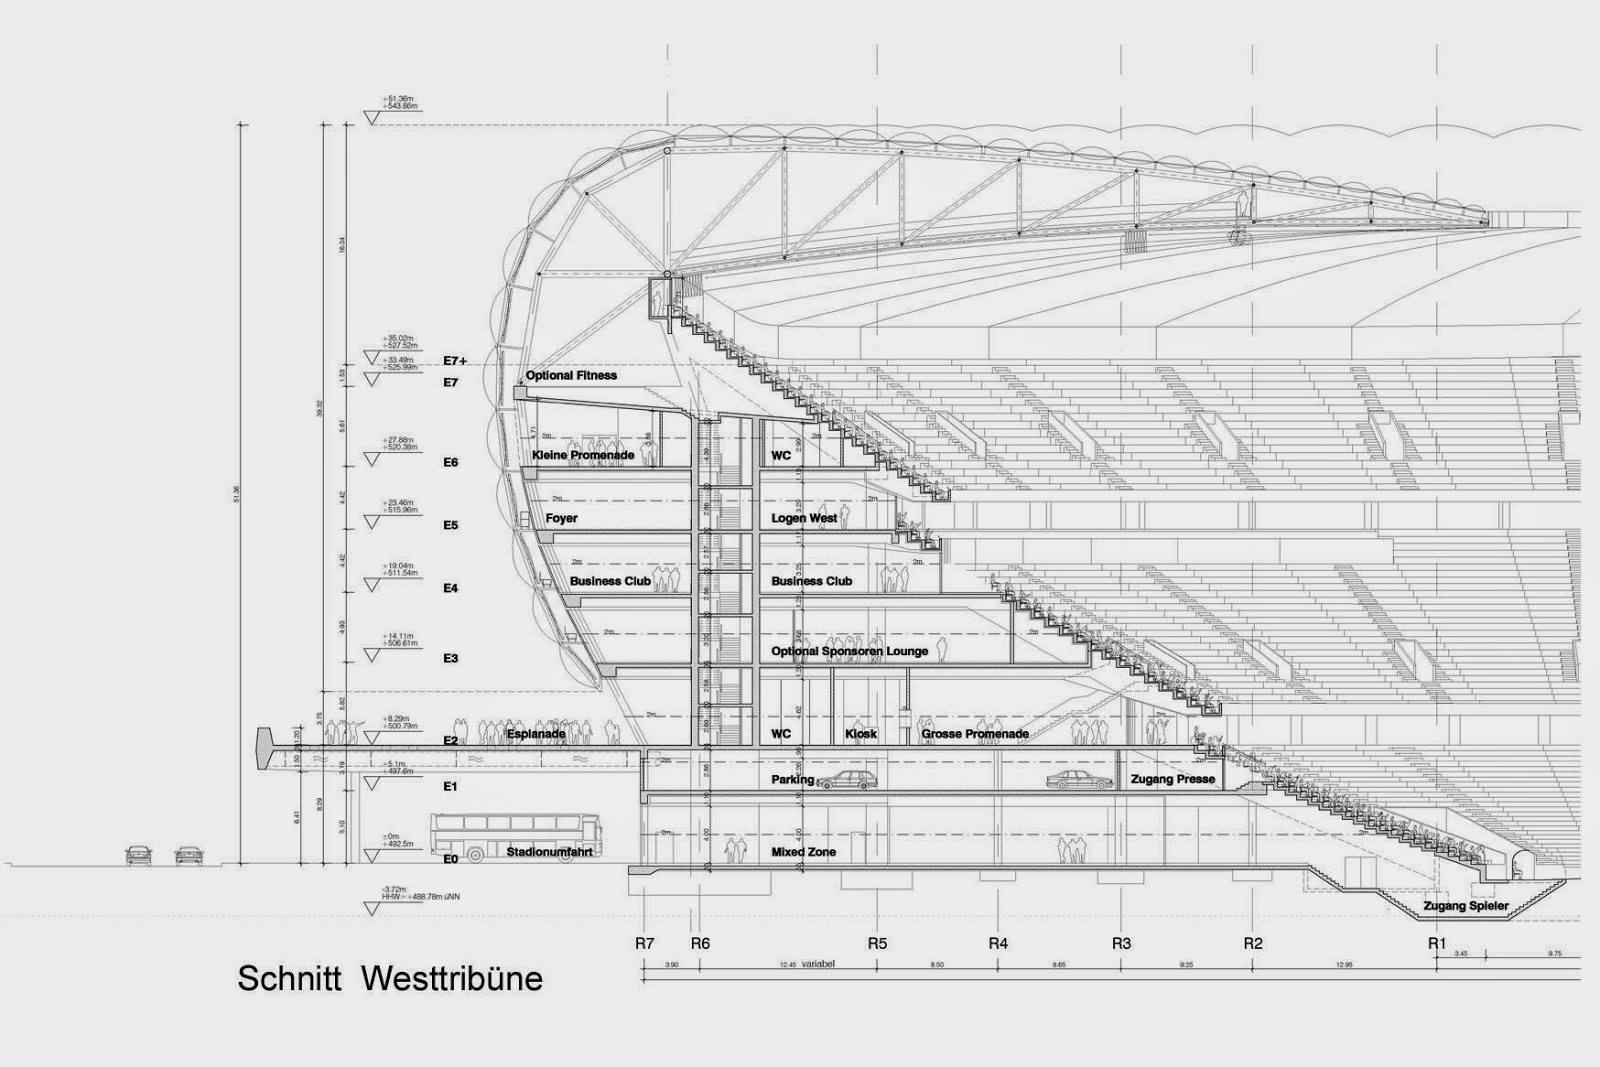 Allianz arena architectural drawings plans designs for Architecture plan